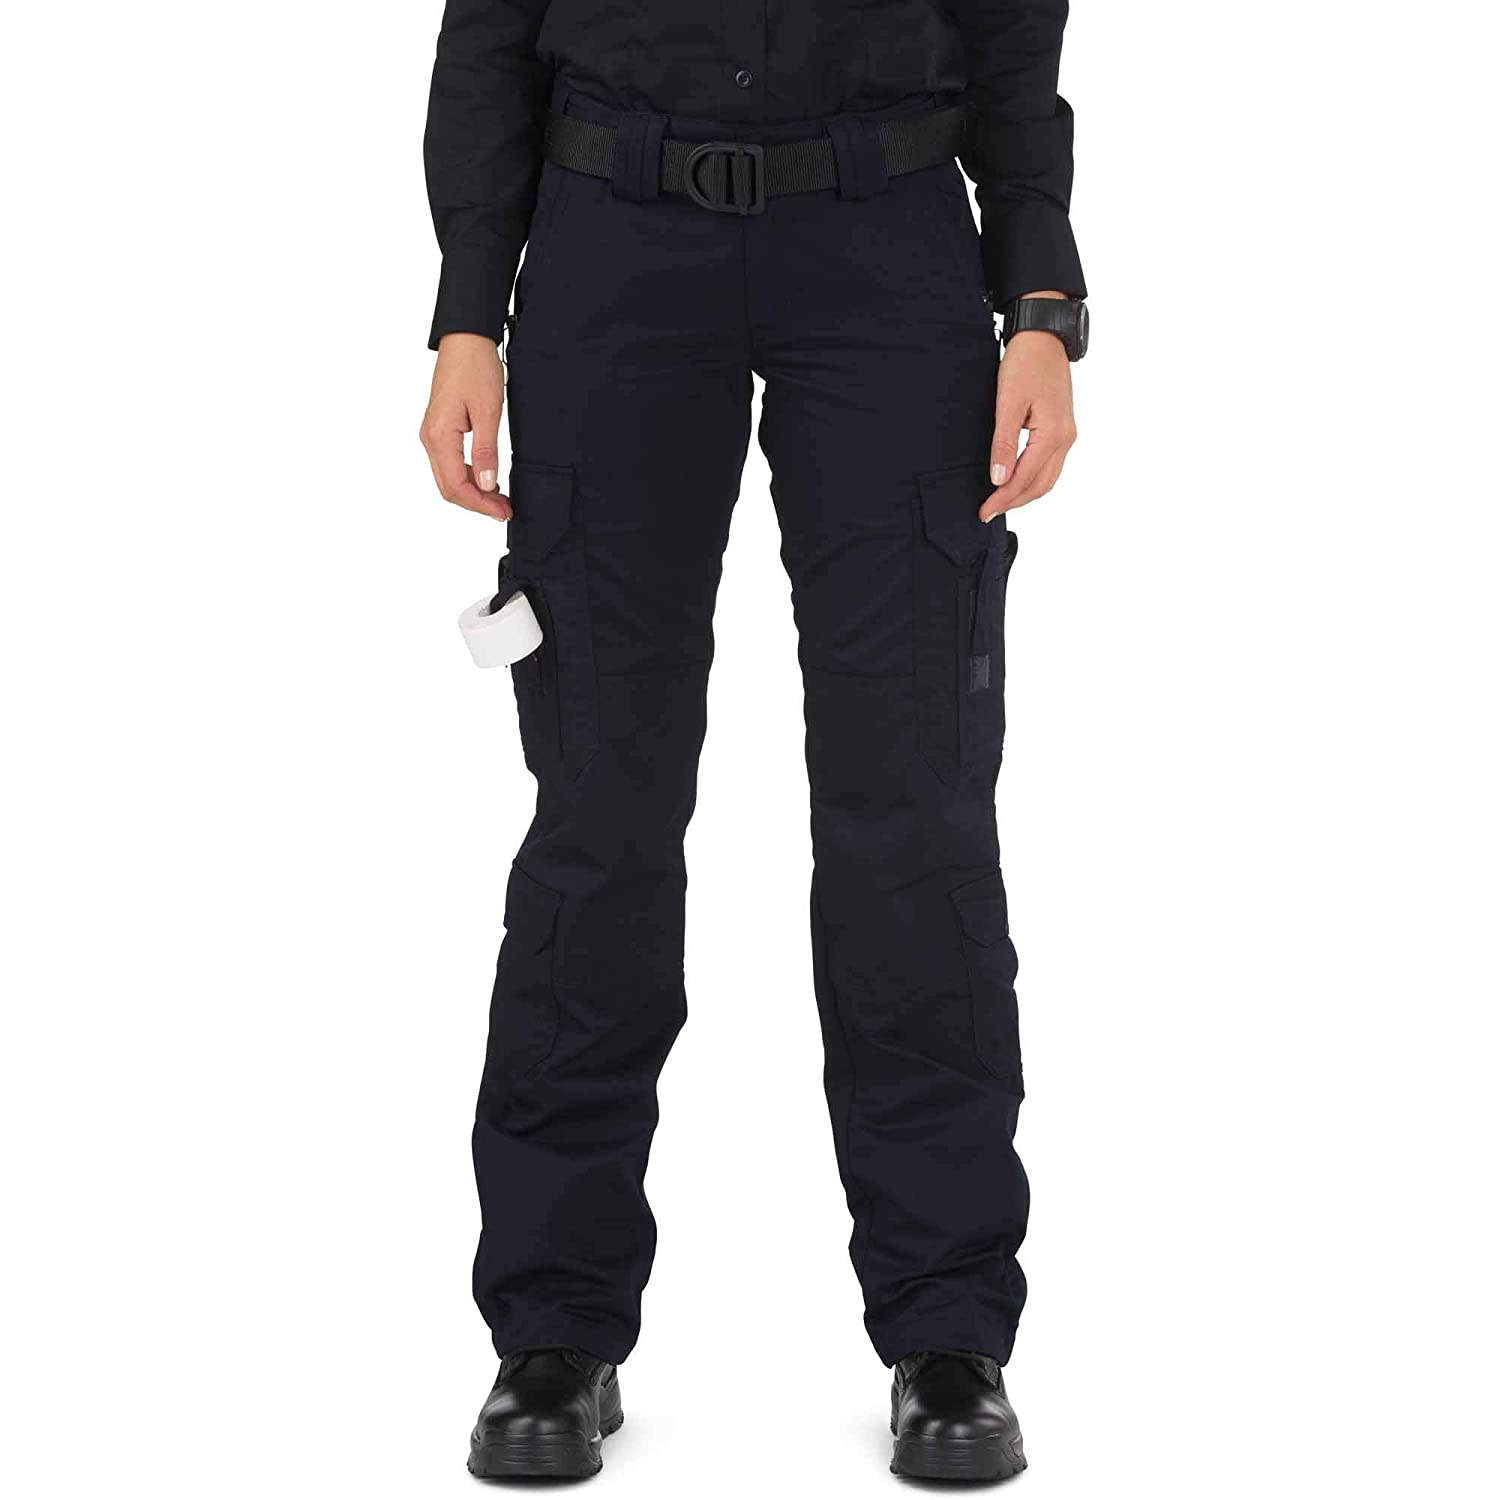 5.11 Tactical Women's EMS Pants 64369